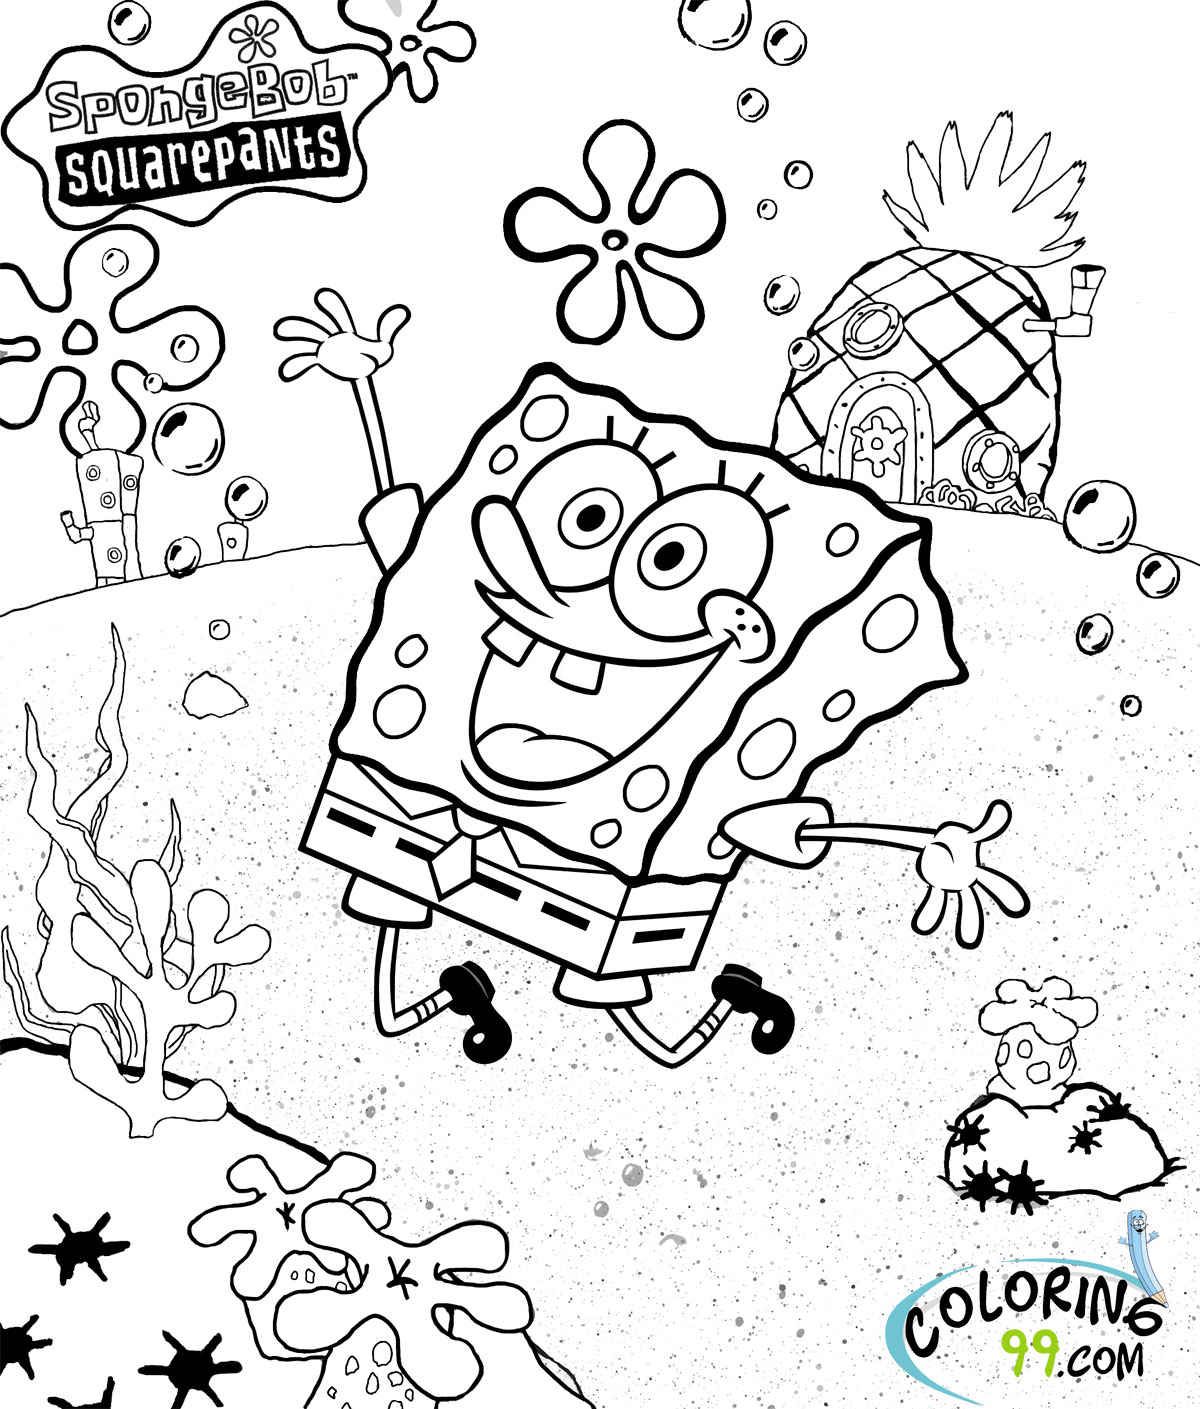 sqarepants coloring pages - photo#20